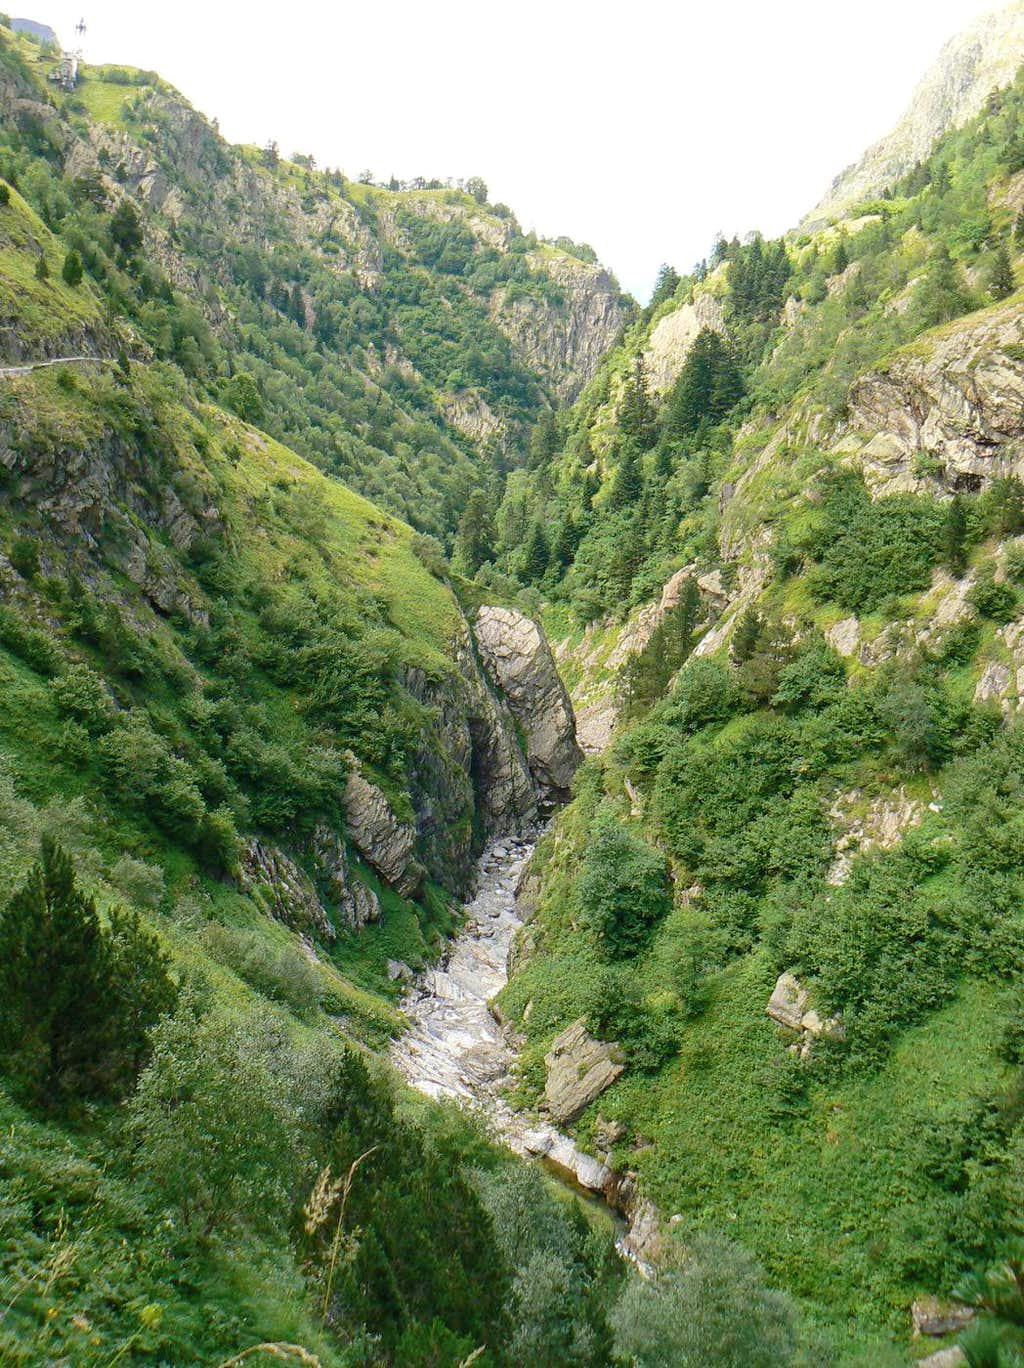 The Clarabide gorges